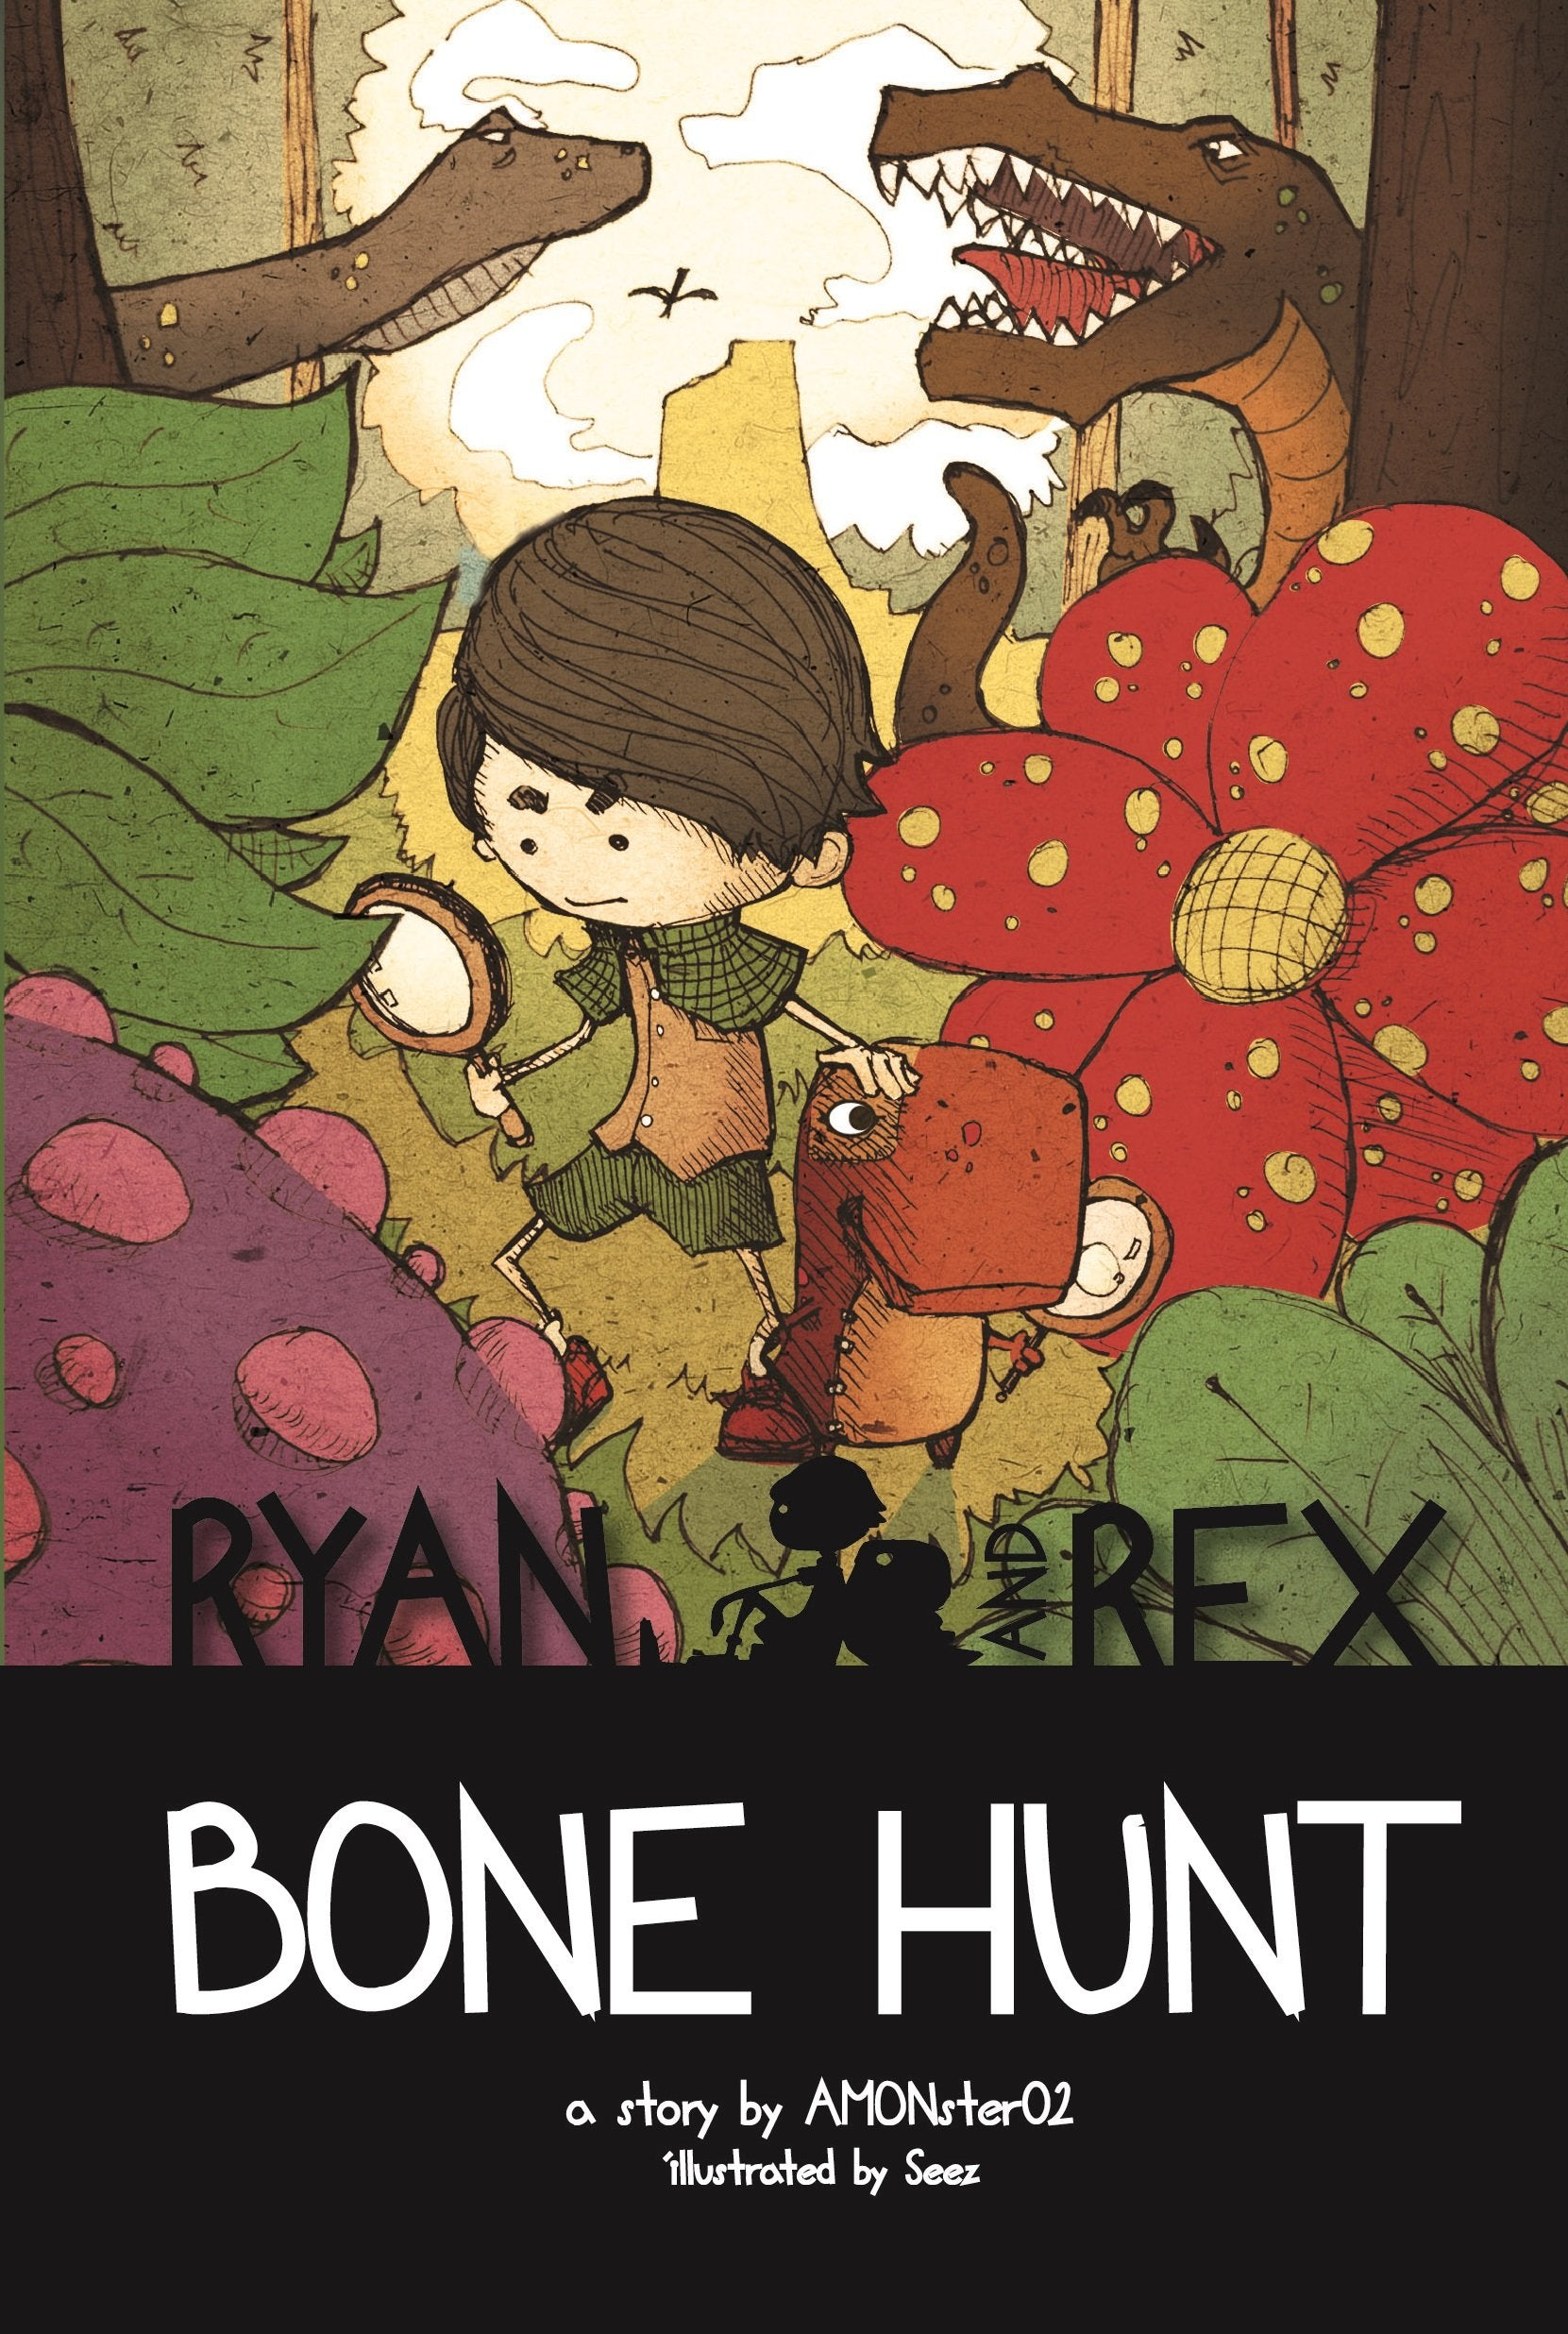 Ryan and Rex: Bone Hunt